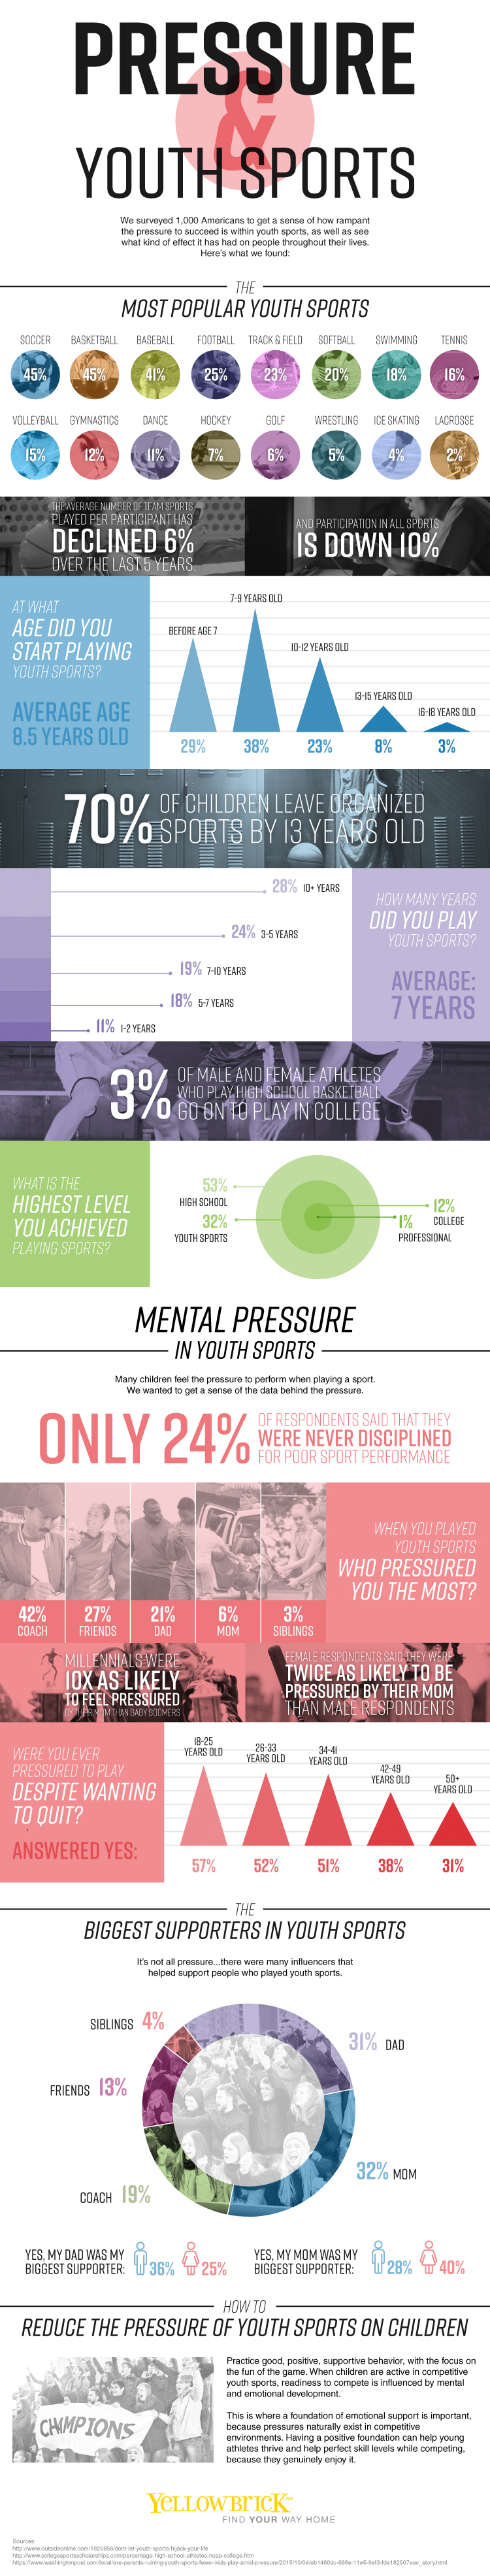 Pressure Faced By Youths To Excel In Their Sport - Infographic